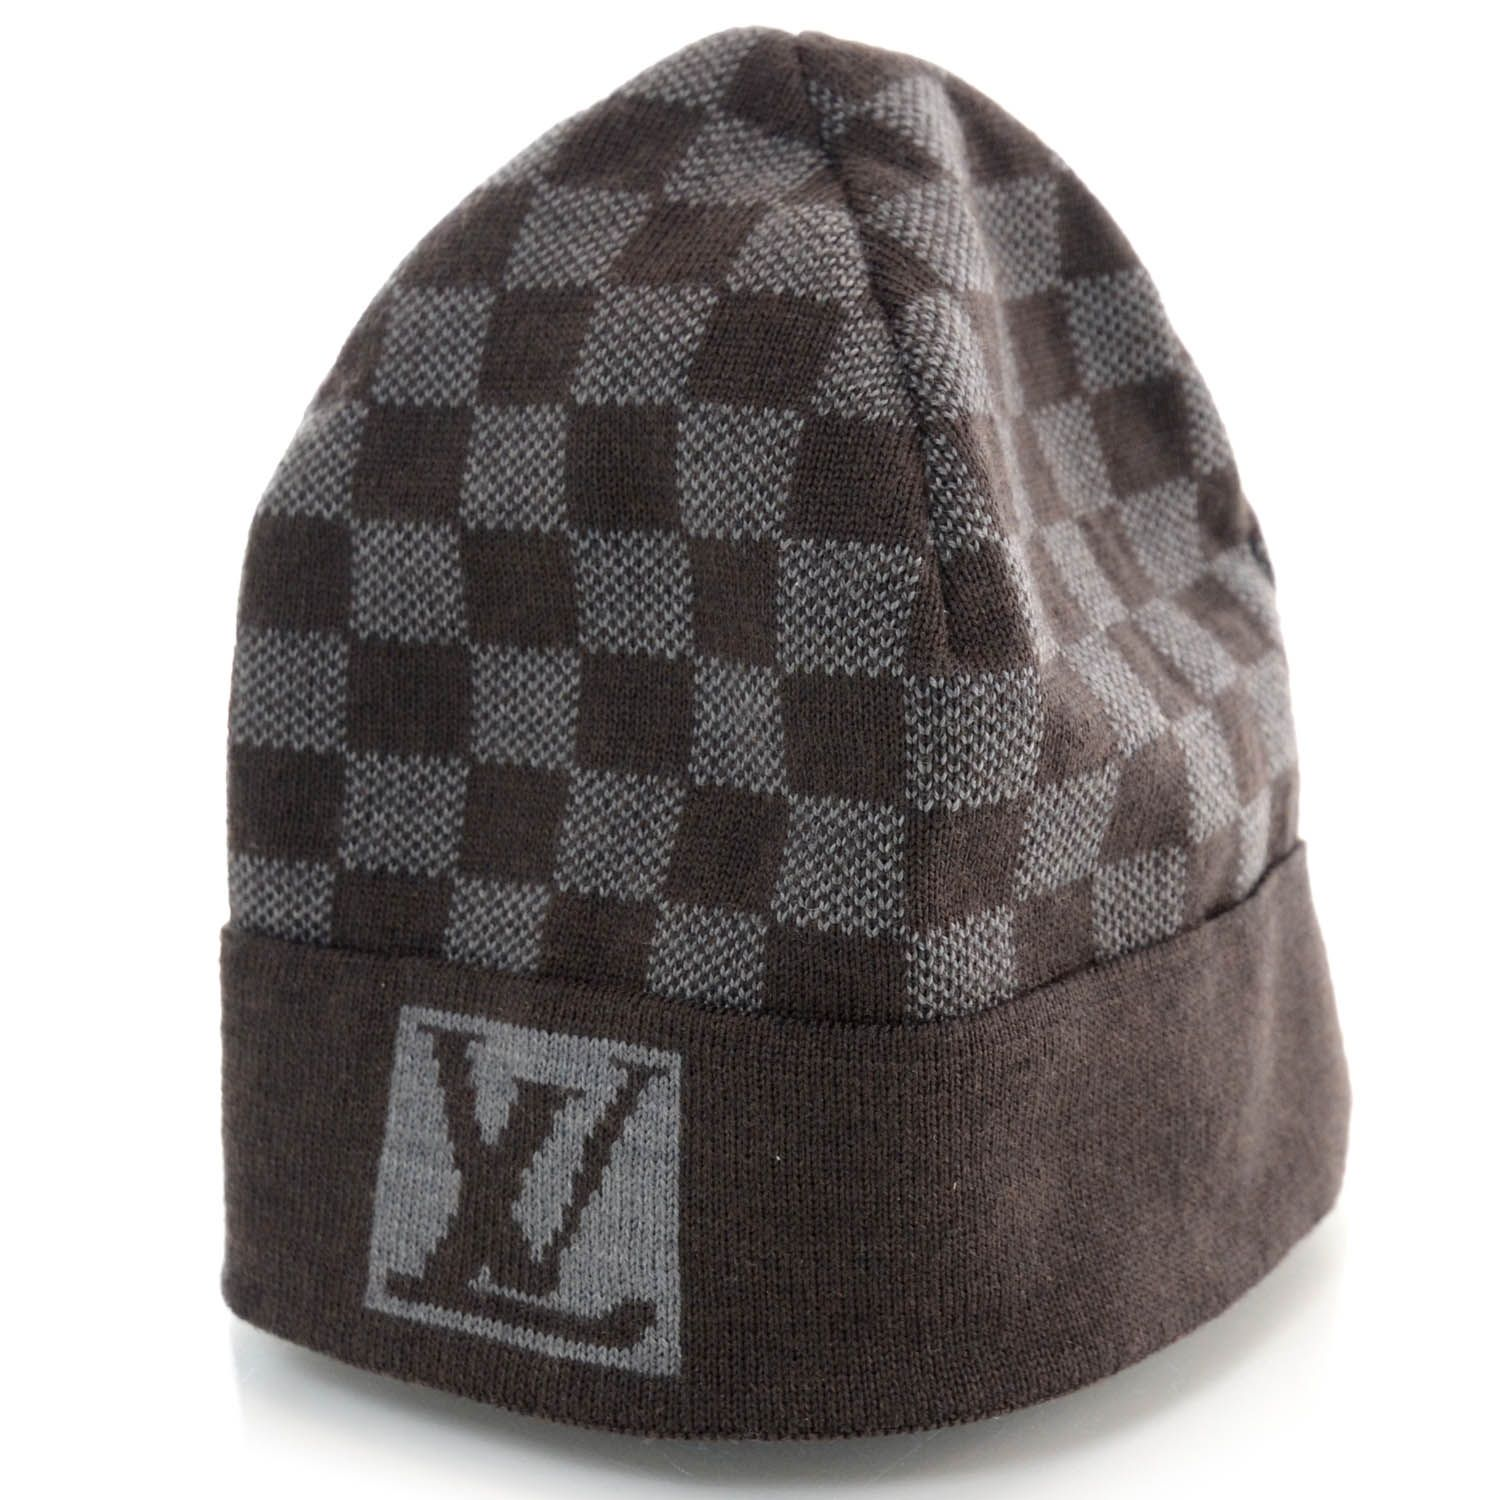 27a45ecff18 LOUIS VUITTON Wool Bonnet Petit Damier Beanie Hat